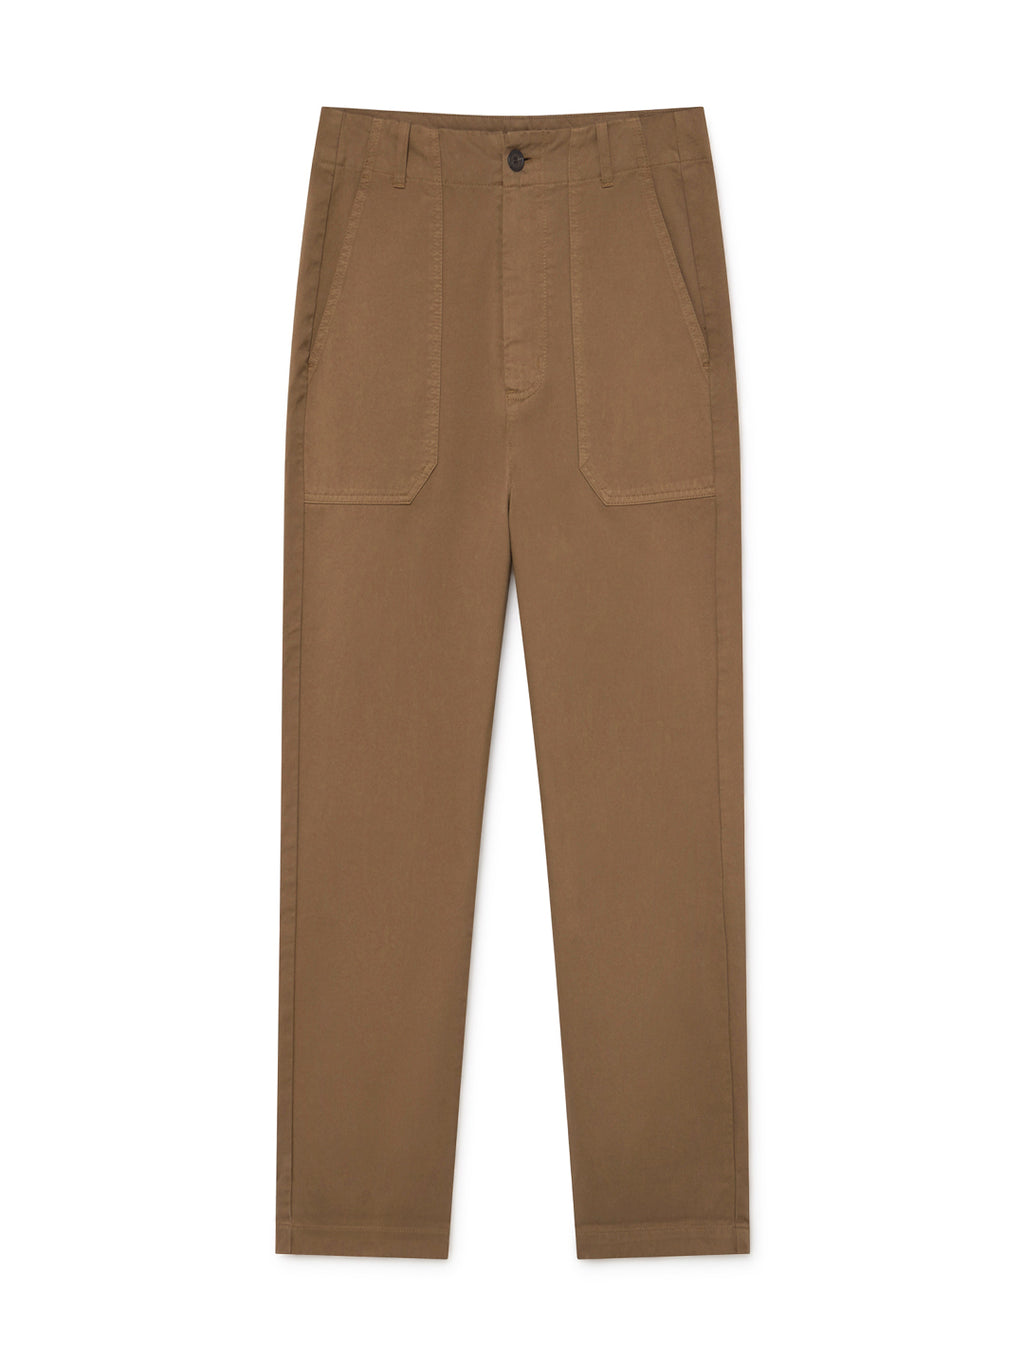 TWOTHIRDS Womens Pants: Kent - Pecan front